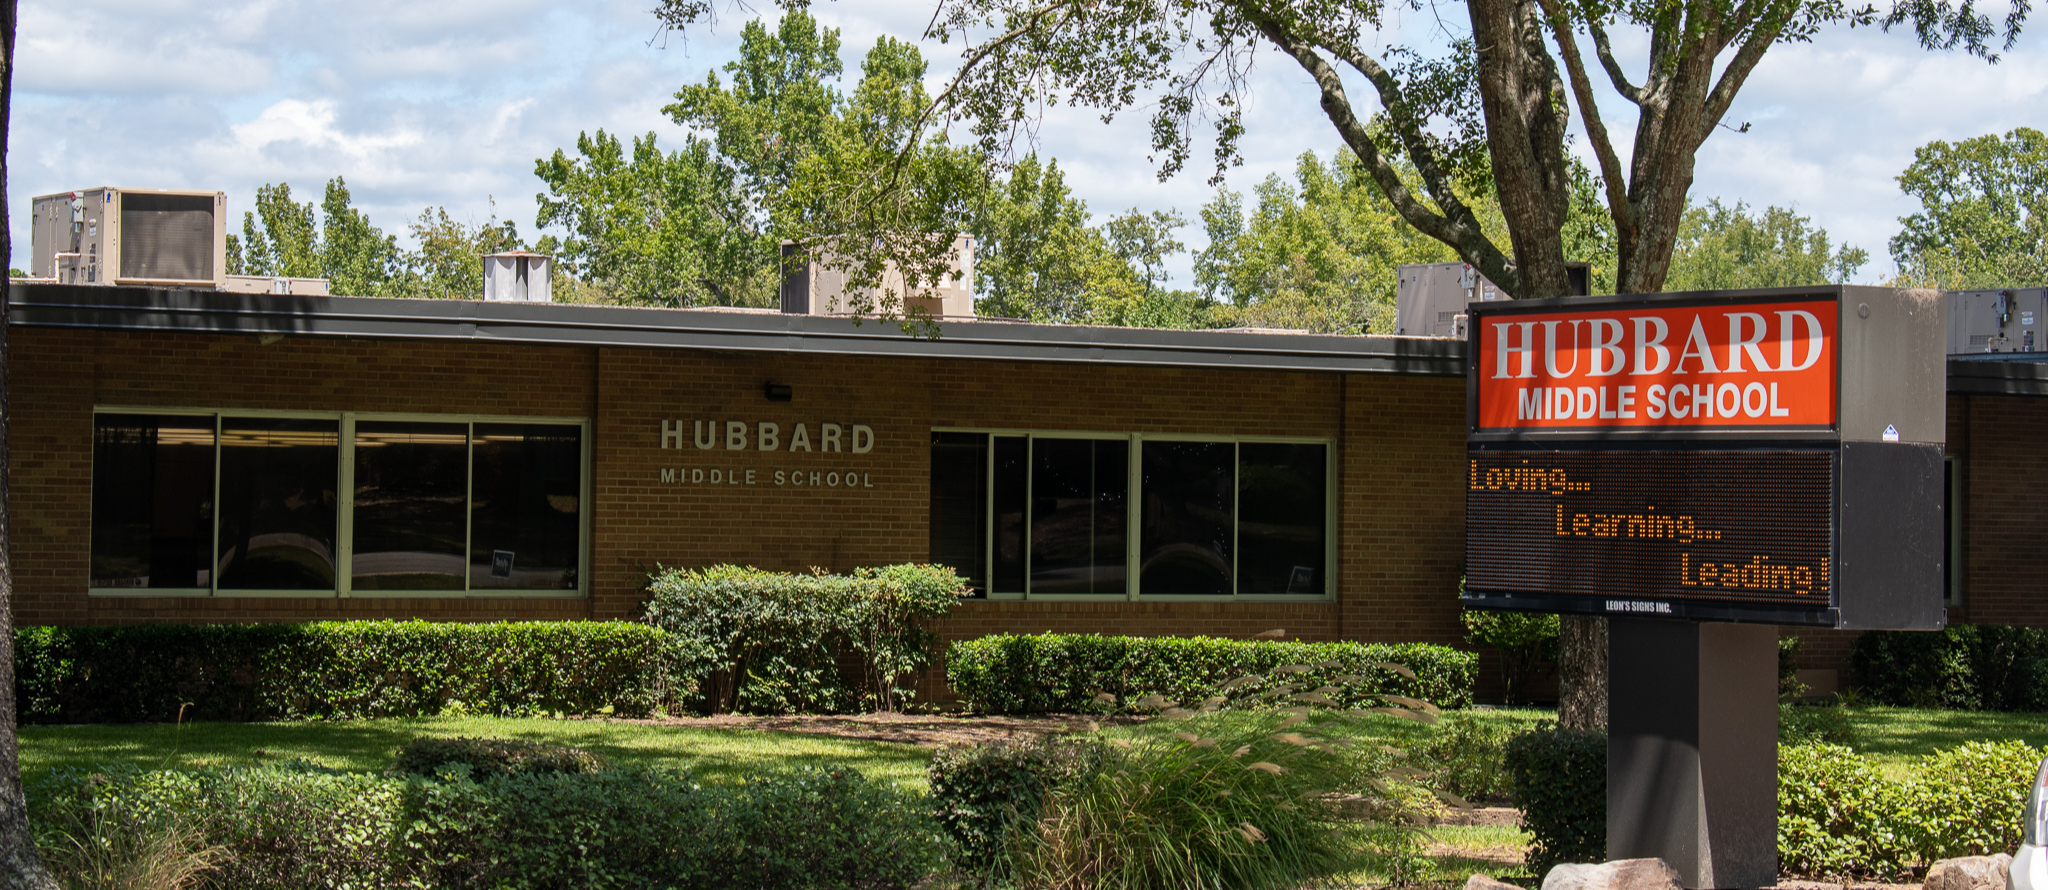 Front of Hubbard Middle School